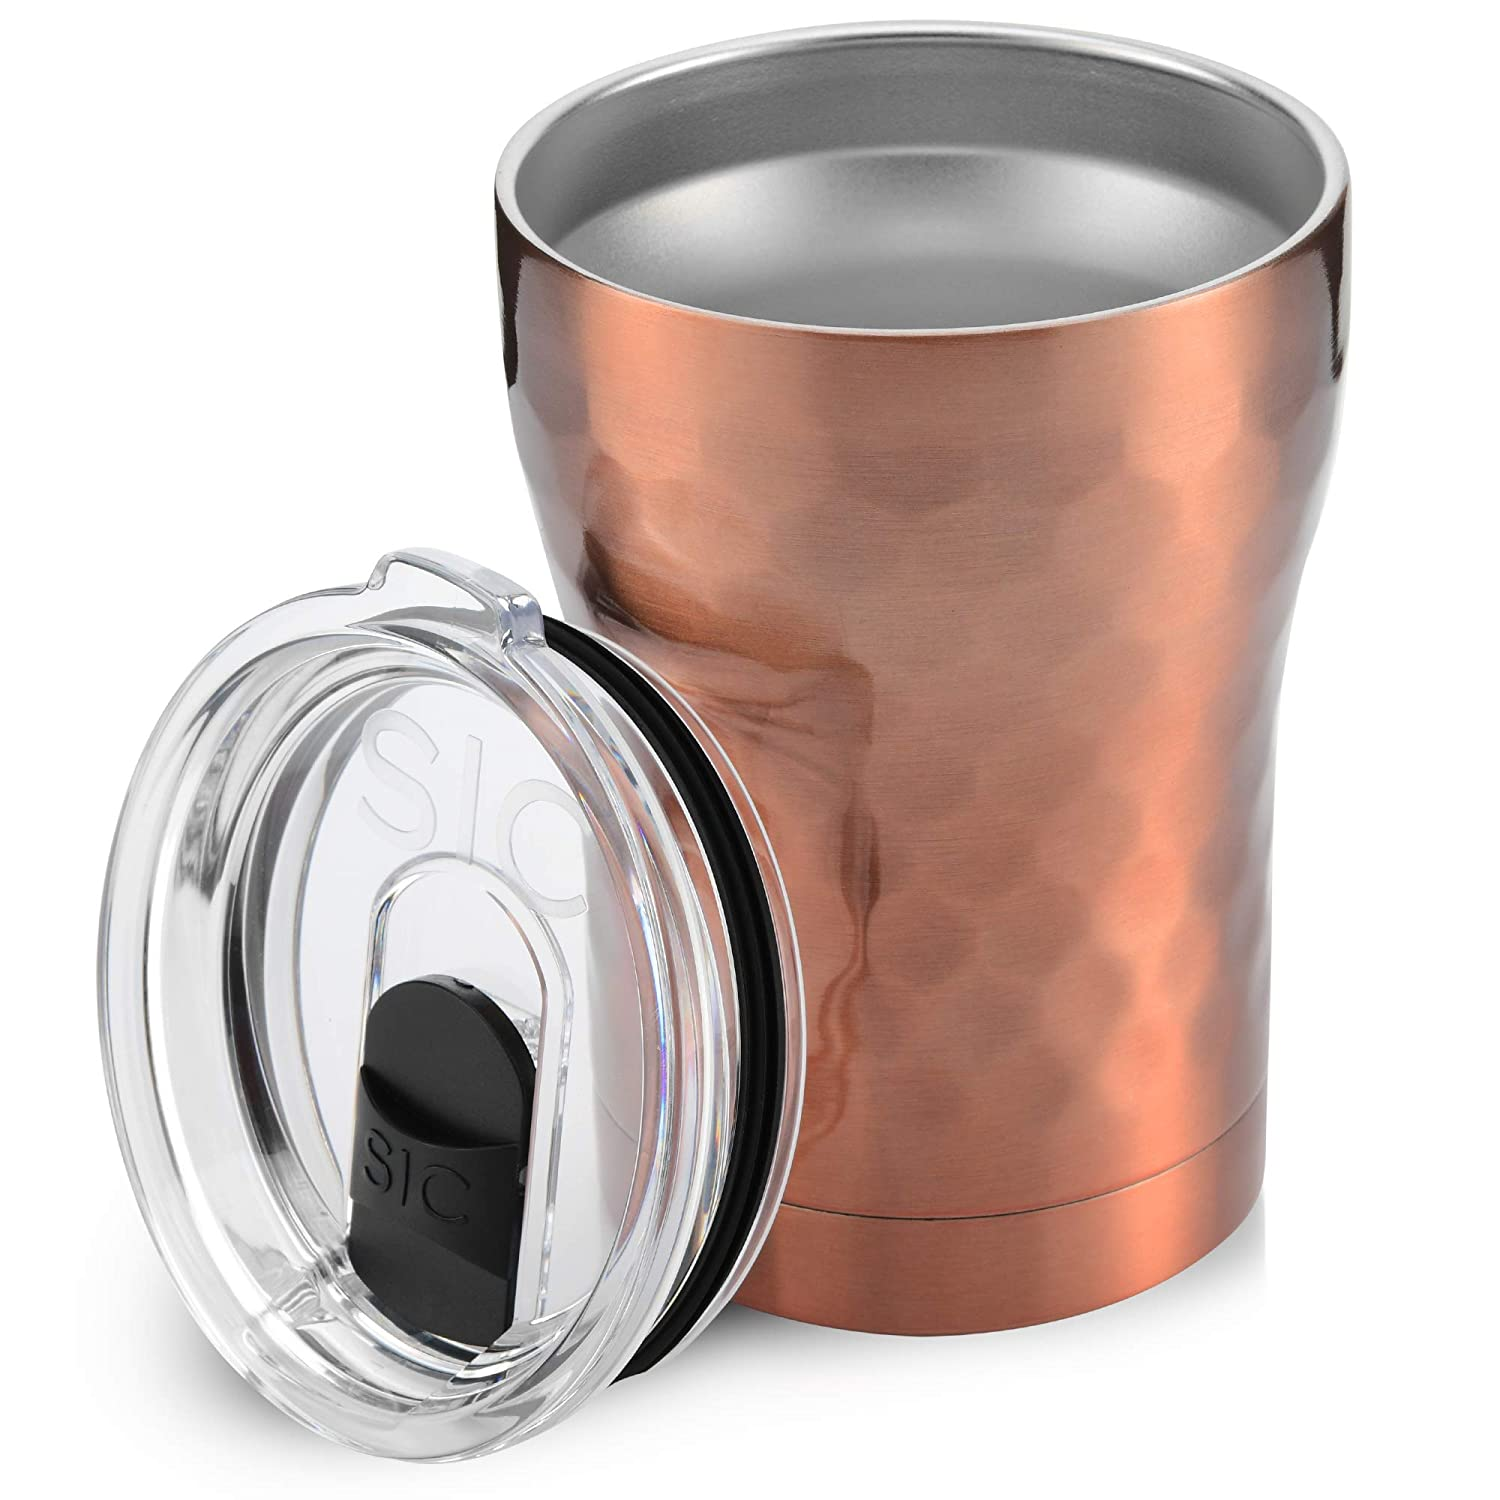 Free And Coated Travel Insulated Powder OzDouble Vacuum 188 Steel Copper Tumblers Proof Lid Splash Wall Hammered Stainless 12 Mug With Bpa k0wZ8NnOPX